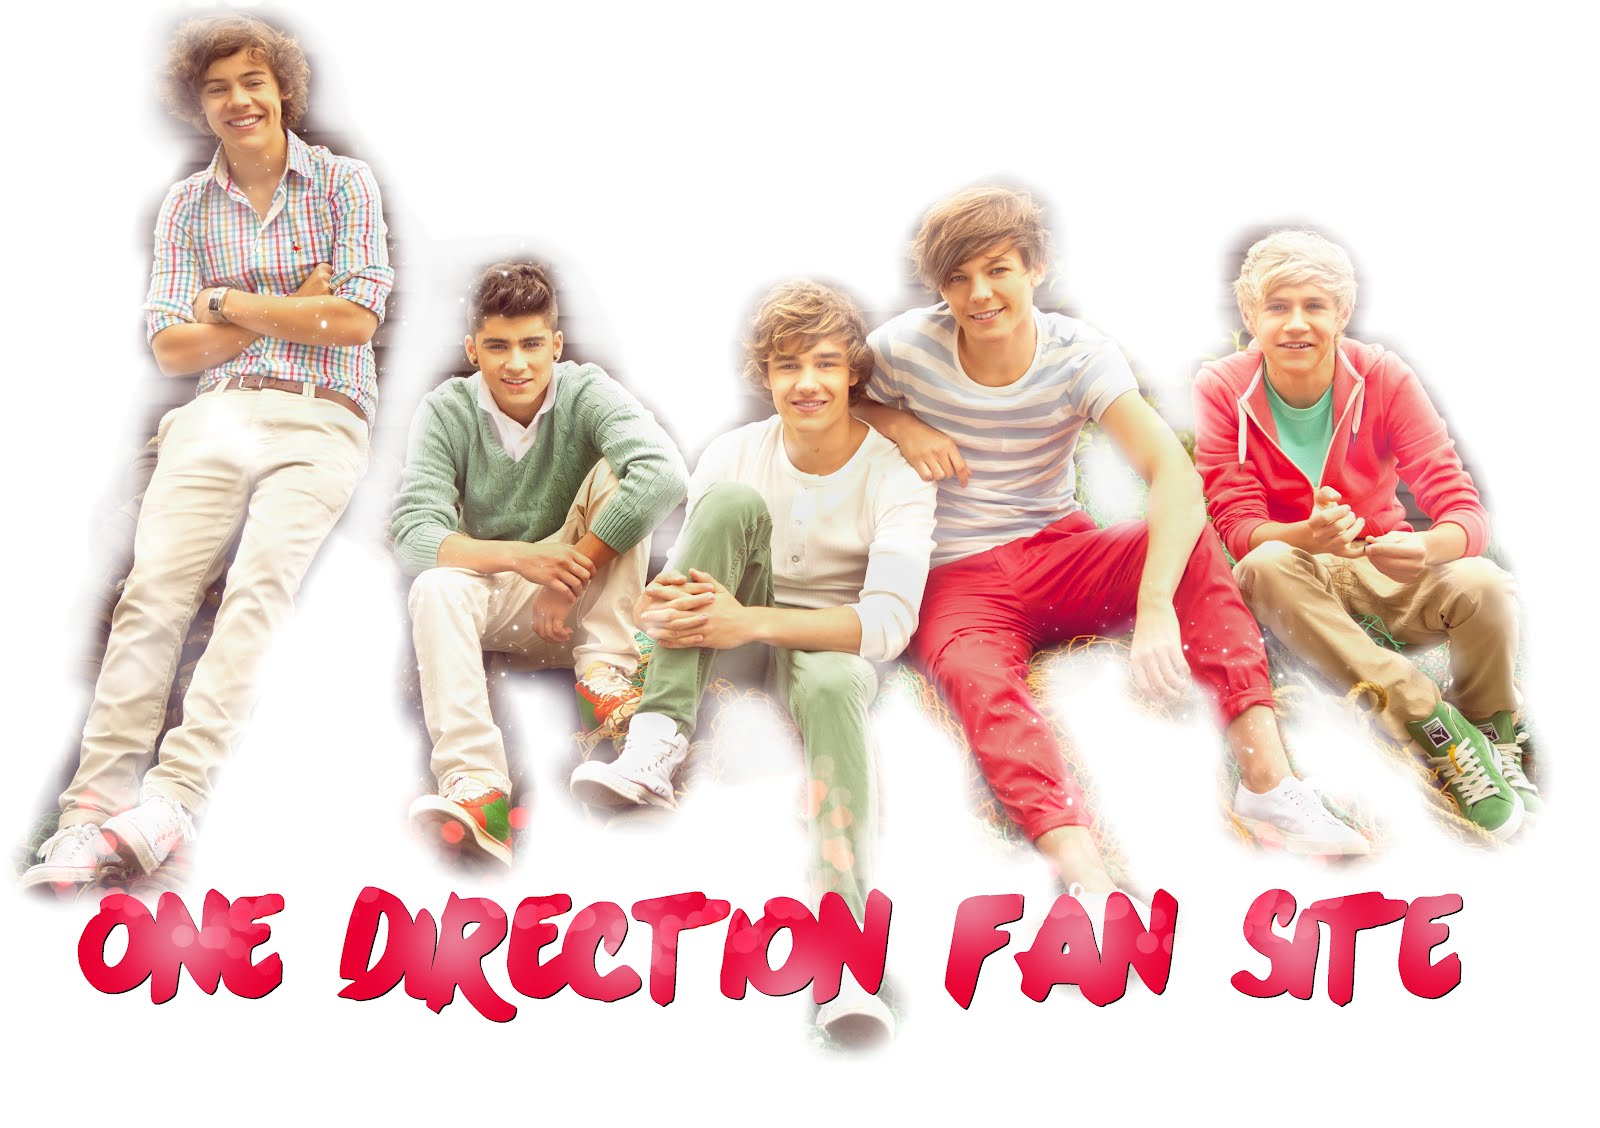 One direction fan site